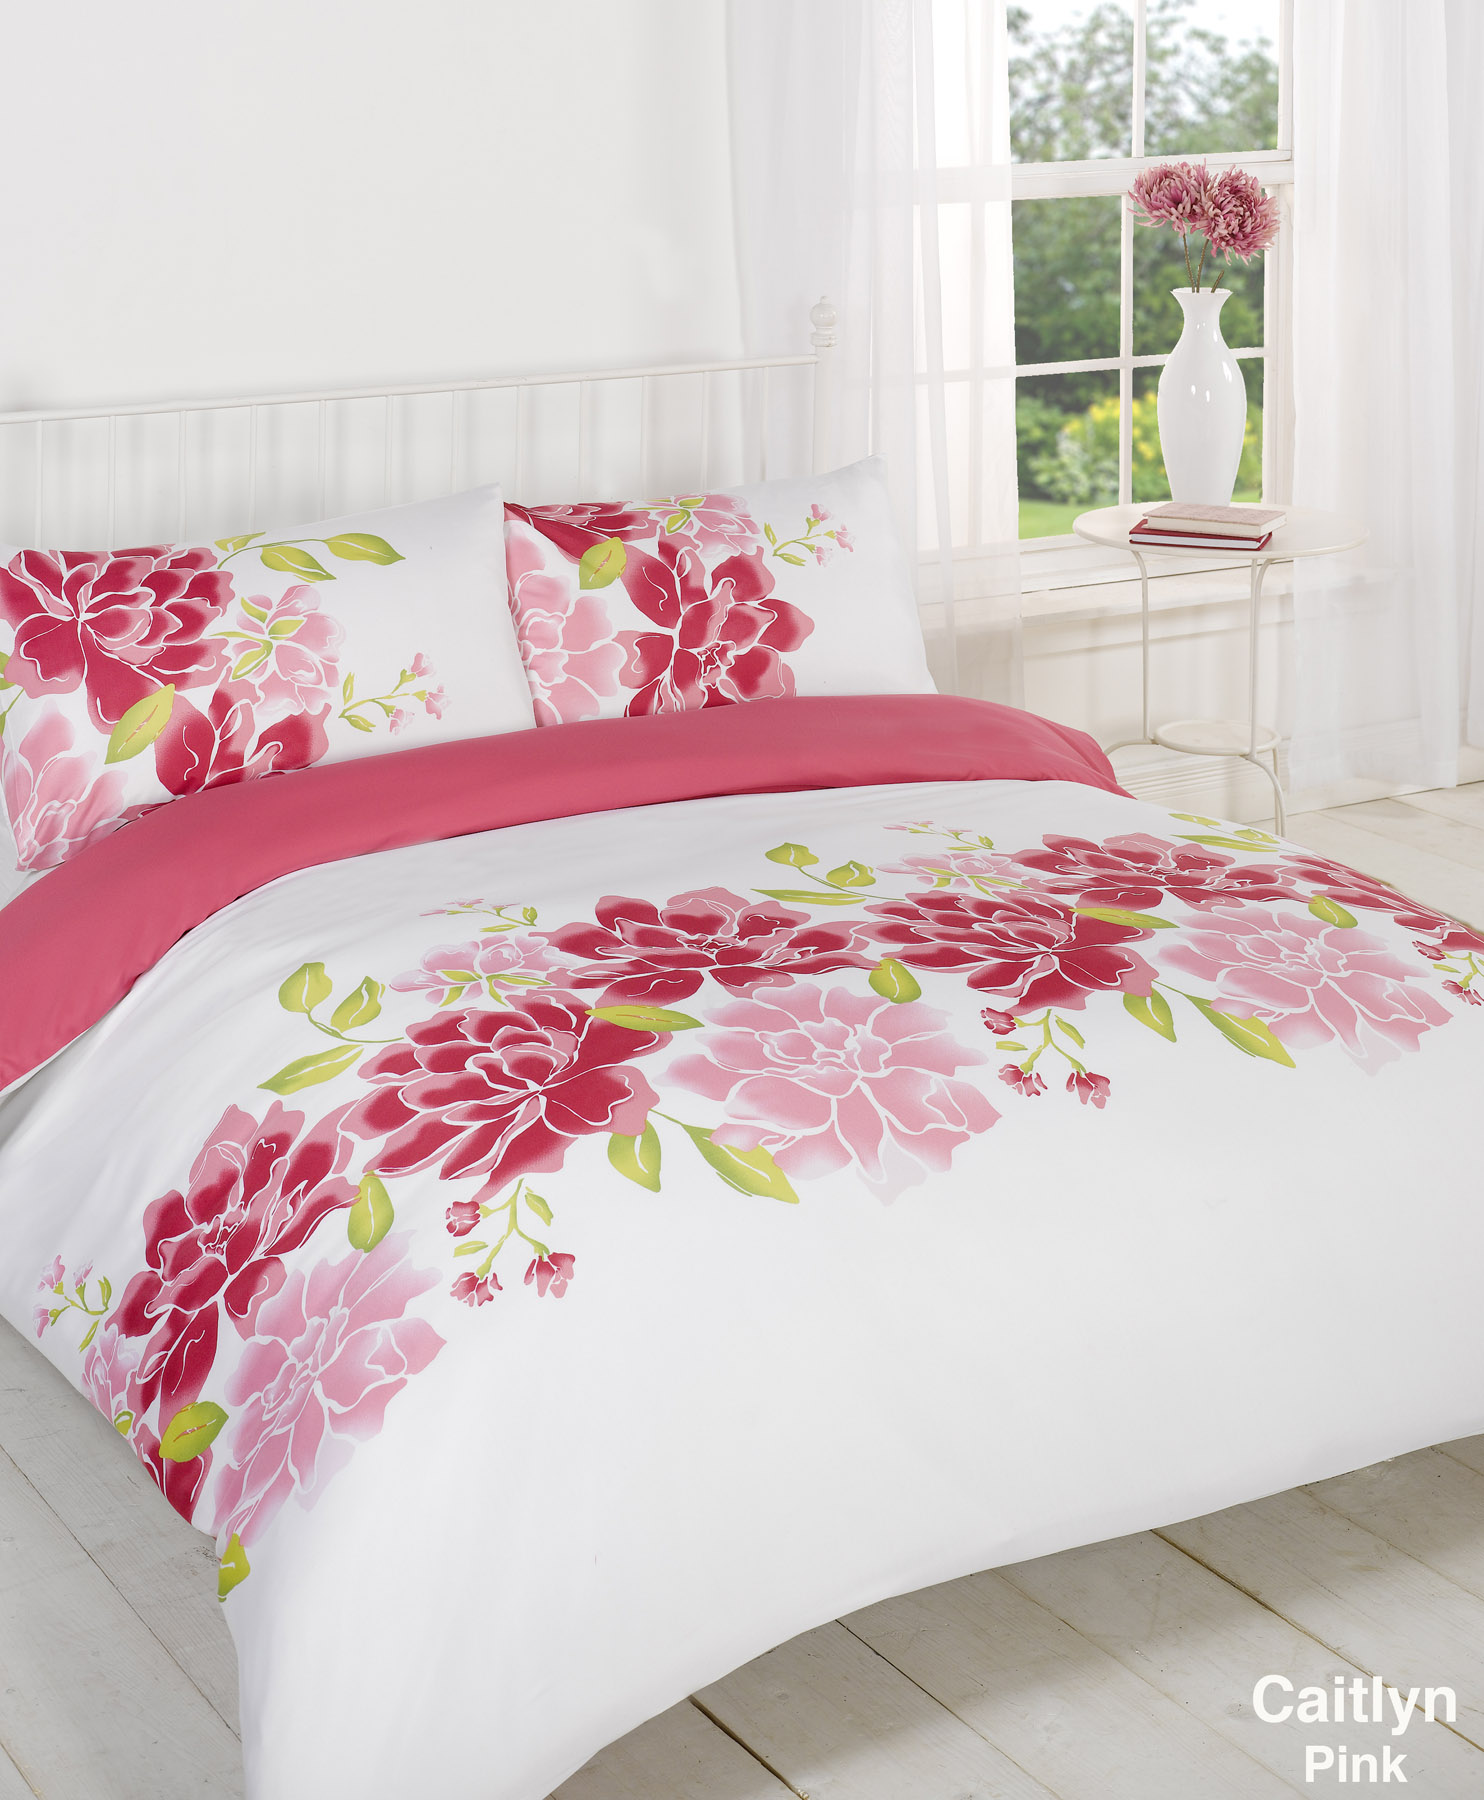 Find great deals on eBay for Single Duvet Cover in Duvet Covers and Sets. Shop with confidence. Skip to main content. eBay: Shop by category. Shop by category. Enter your search keyword. Duvet Quilt Cover Bedding Set Single Double Queen King Size With Pillow Case. $ Buy It Now.